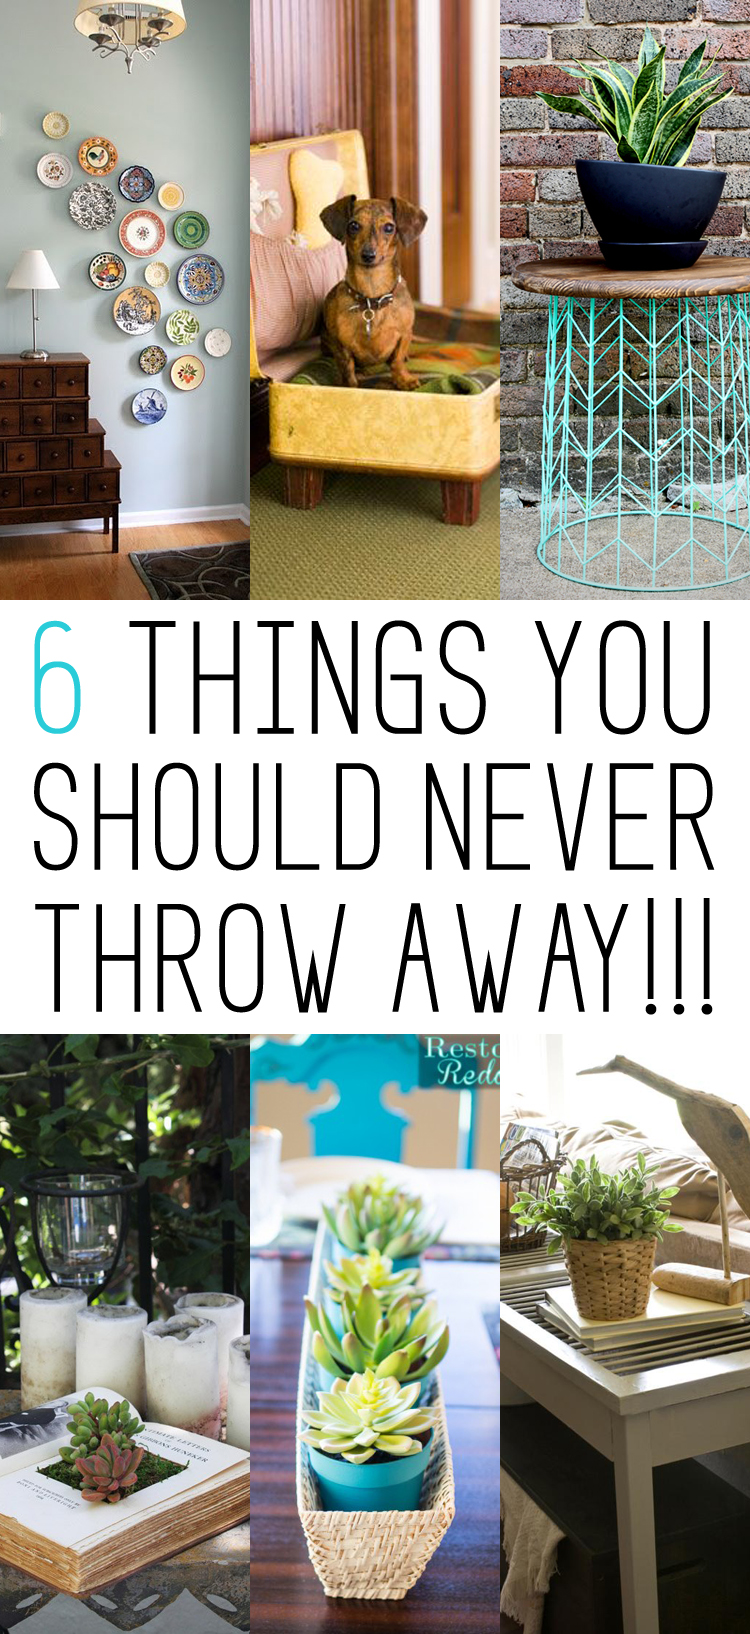 6 Things You Should NEVER THrow Away - Repurpose!